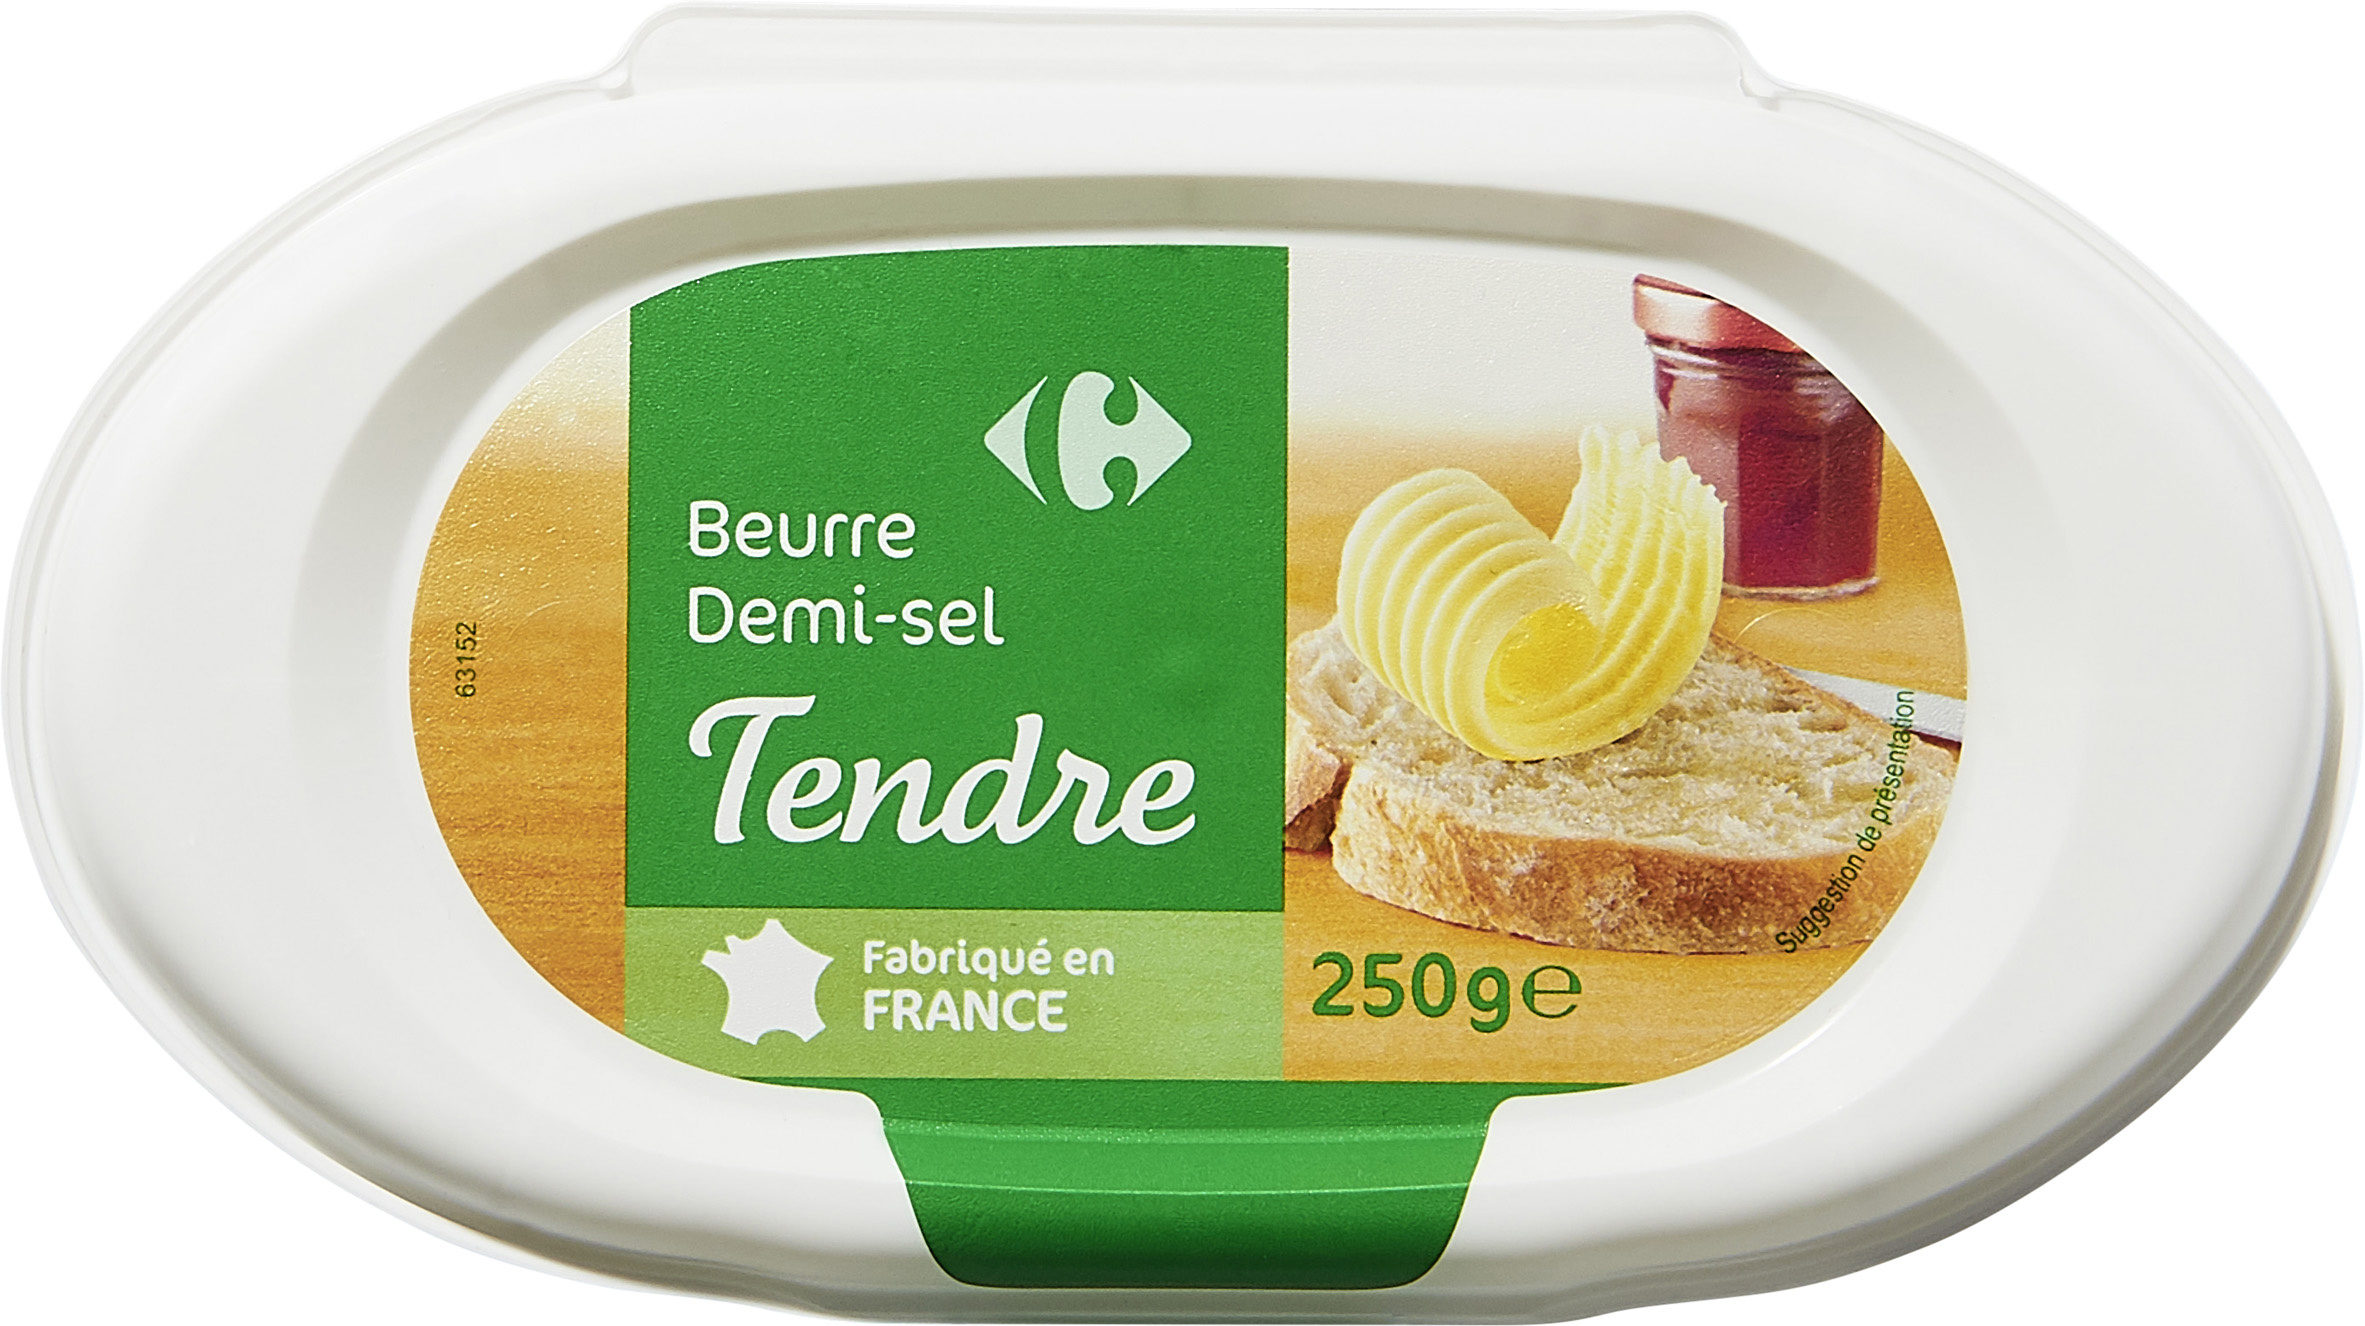 Beurre Demi-selTendre - Product - fr